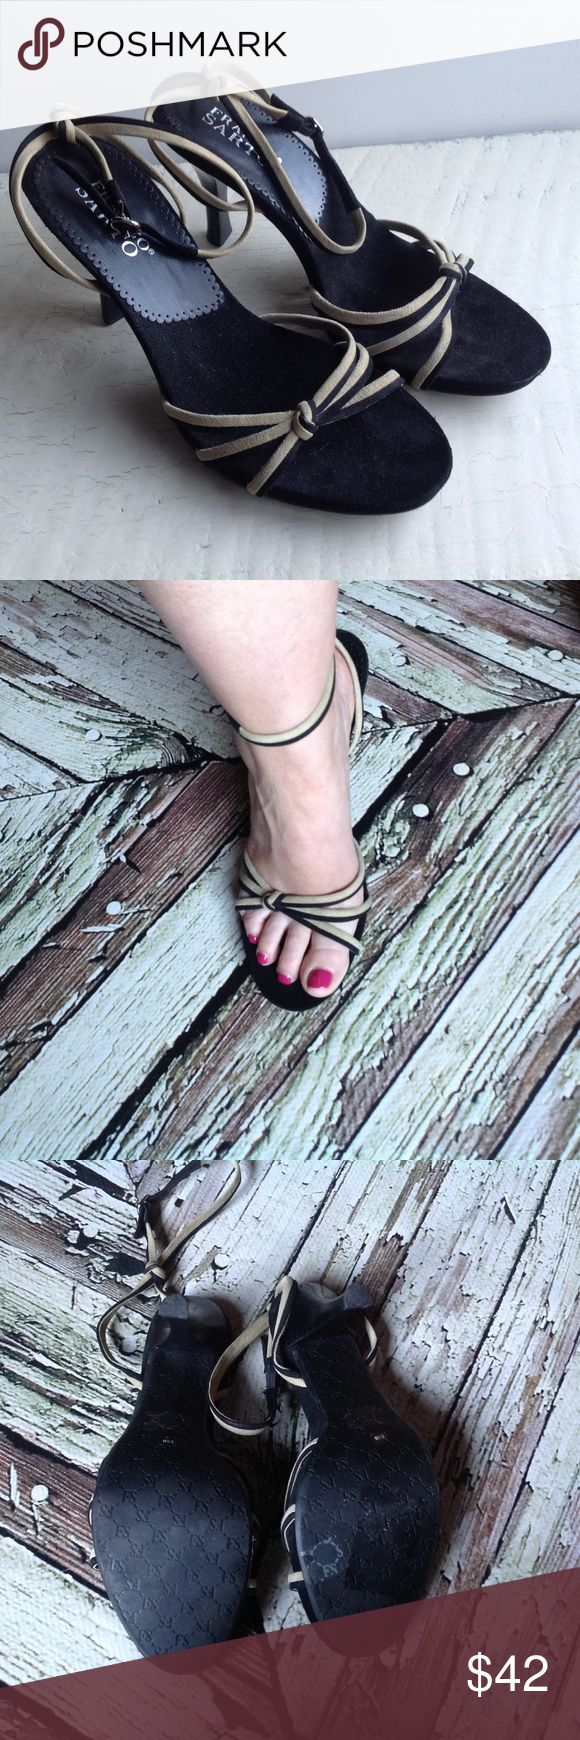 Franco Sarto sandals with ankle strap Soft footbed with suede tan and black upper, rubber sole for non slip, 3 inch heel. Franco Sarto Shoes Sandals